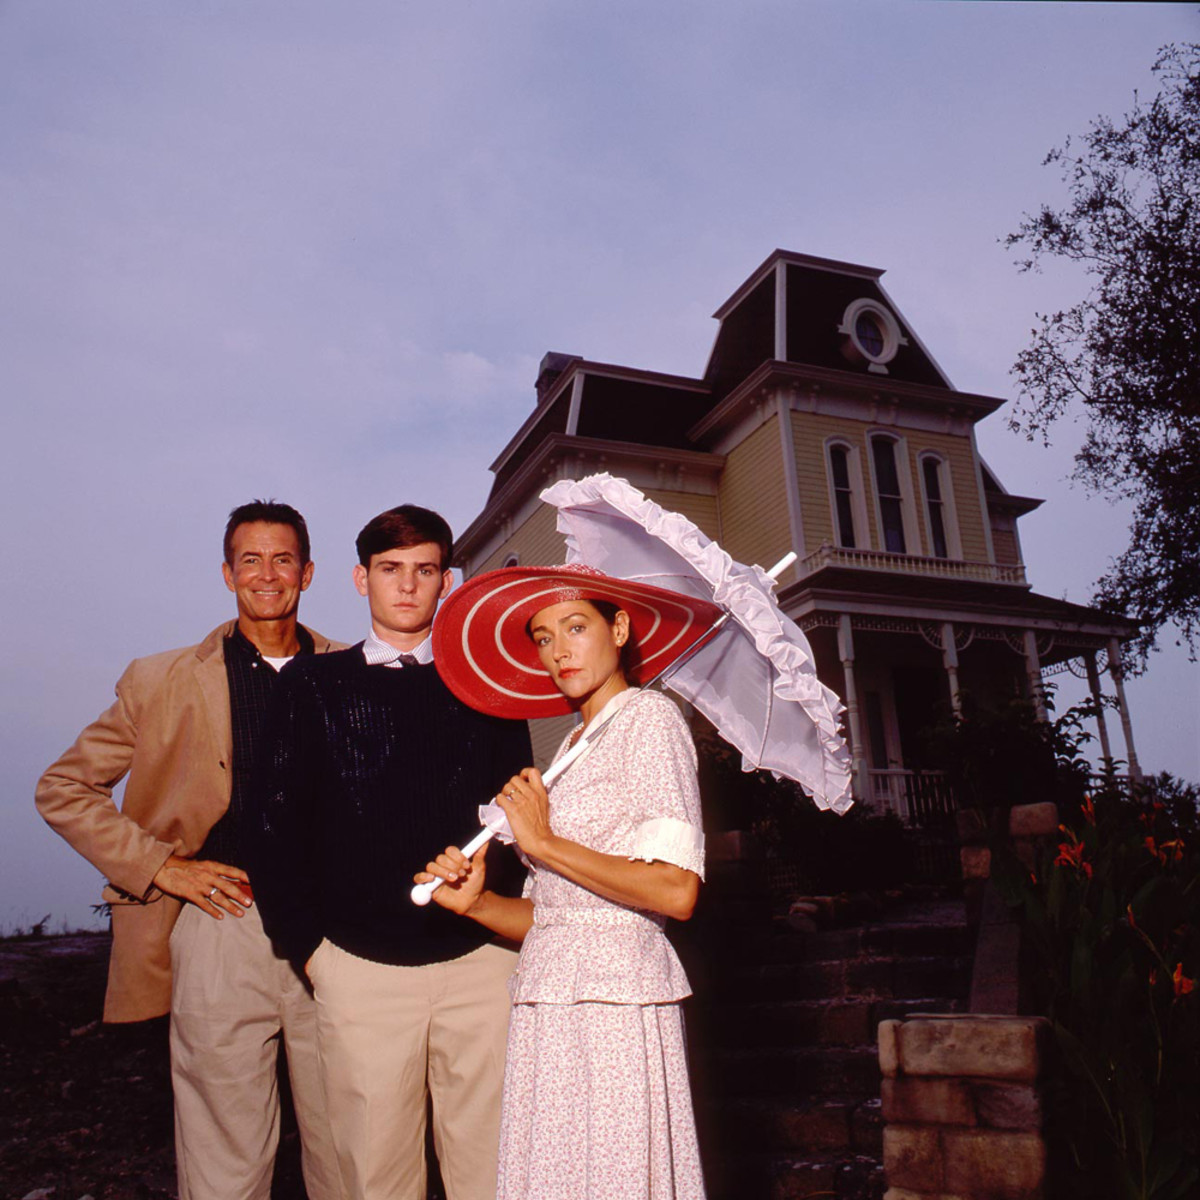 Anthony Perkins, Olivia Hussey and Henry Thomas on the Universal backlot where the film was made